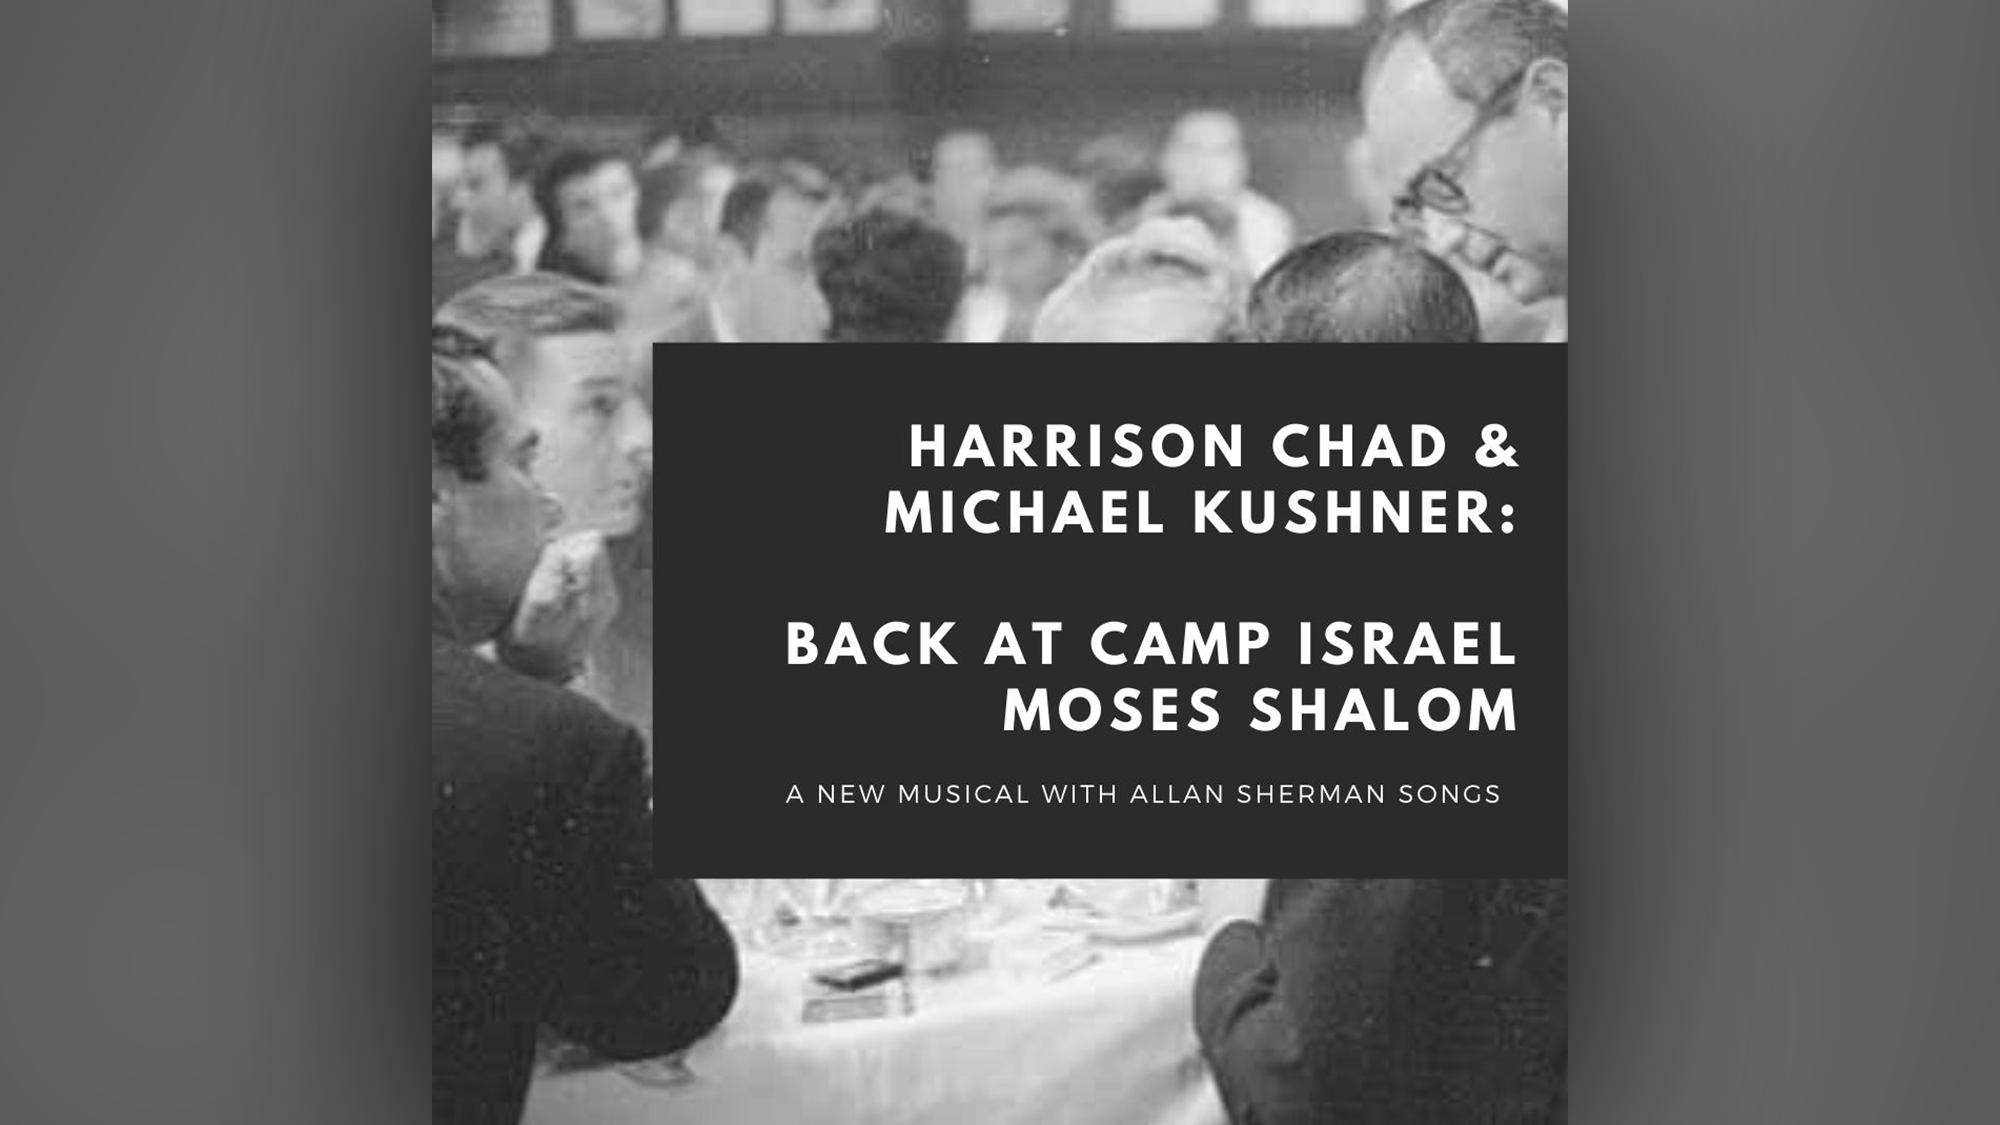 Harrison Chad & Michael Kushner: Back At Camp Israel Moses Shalom